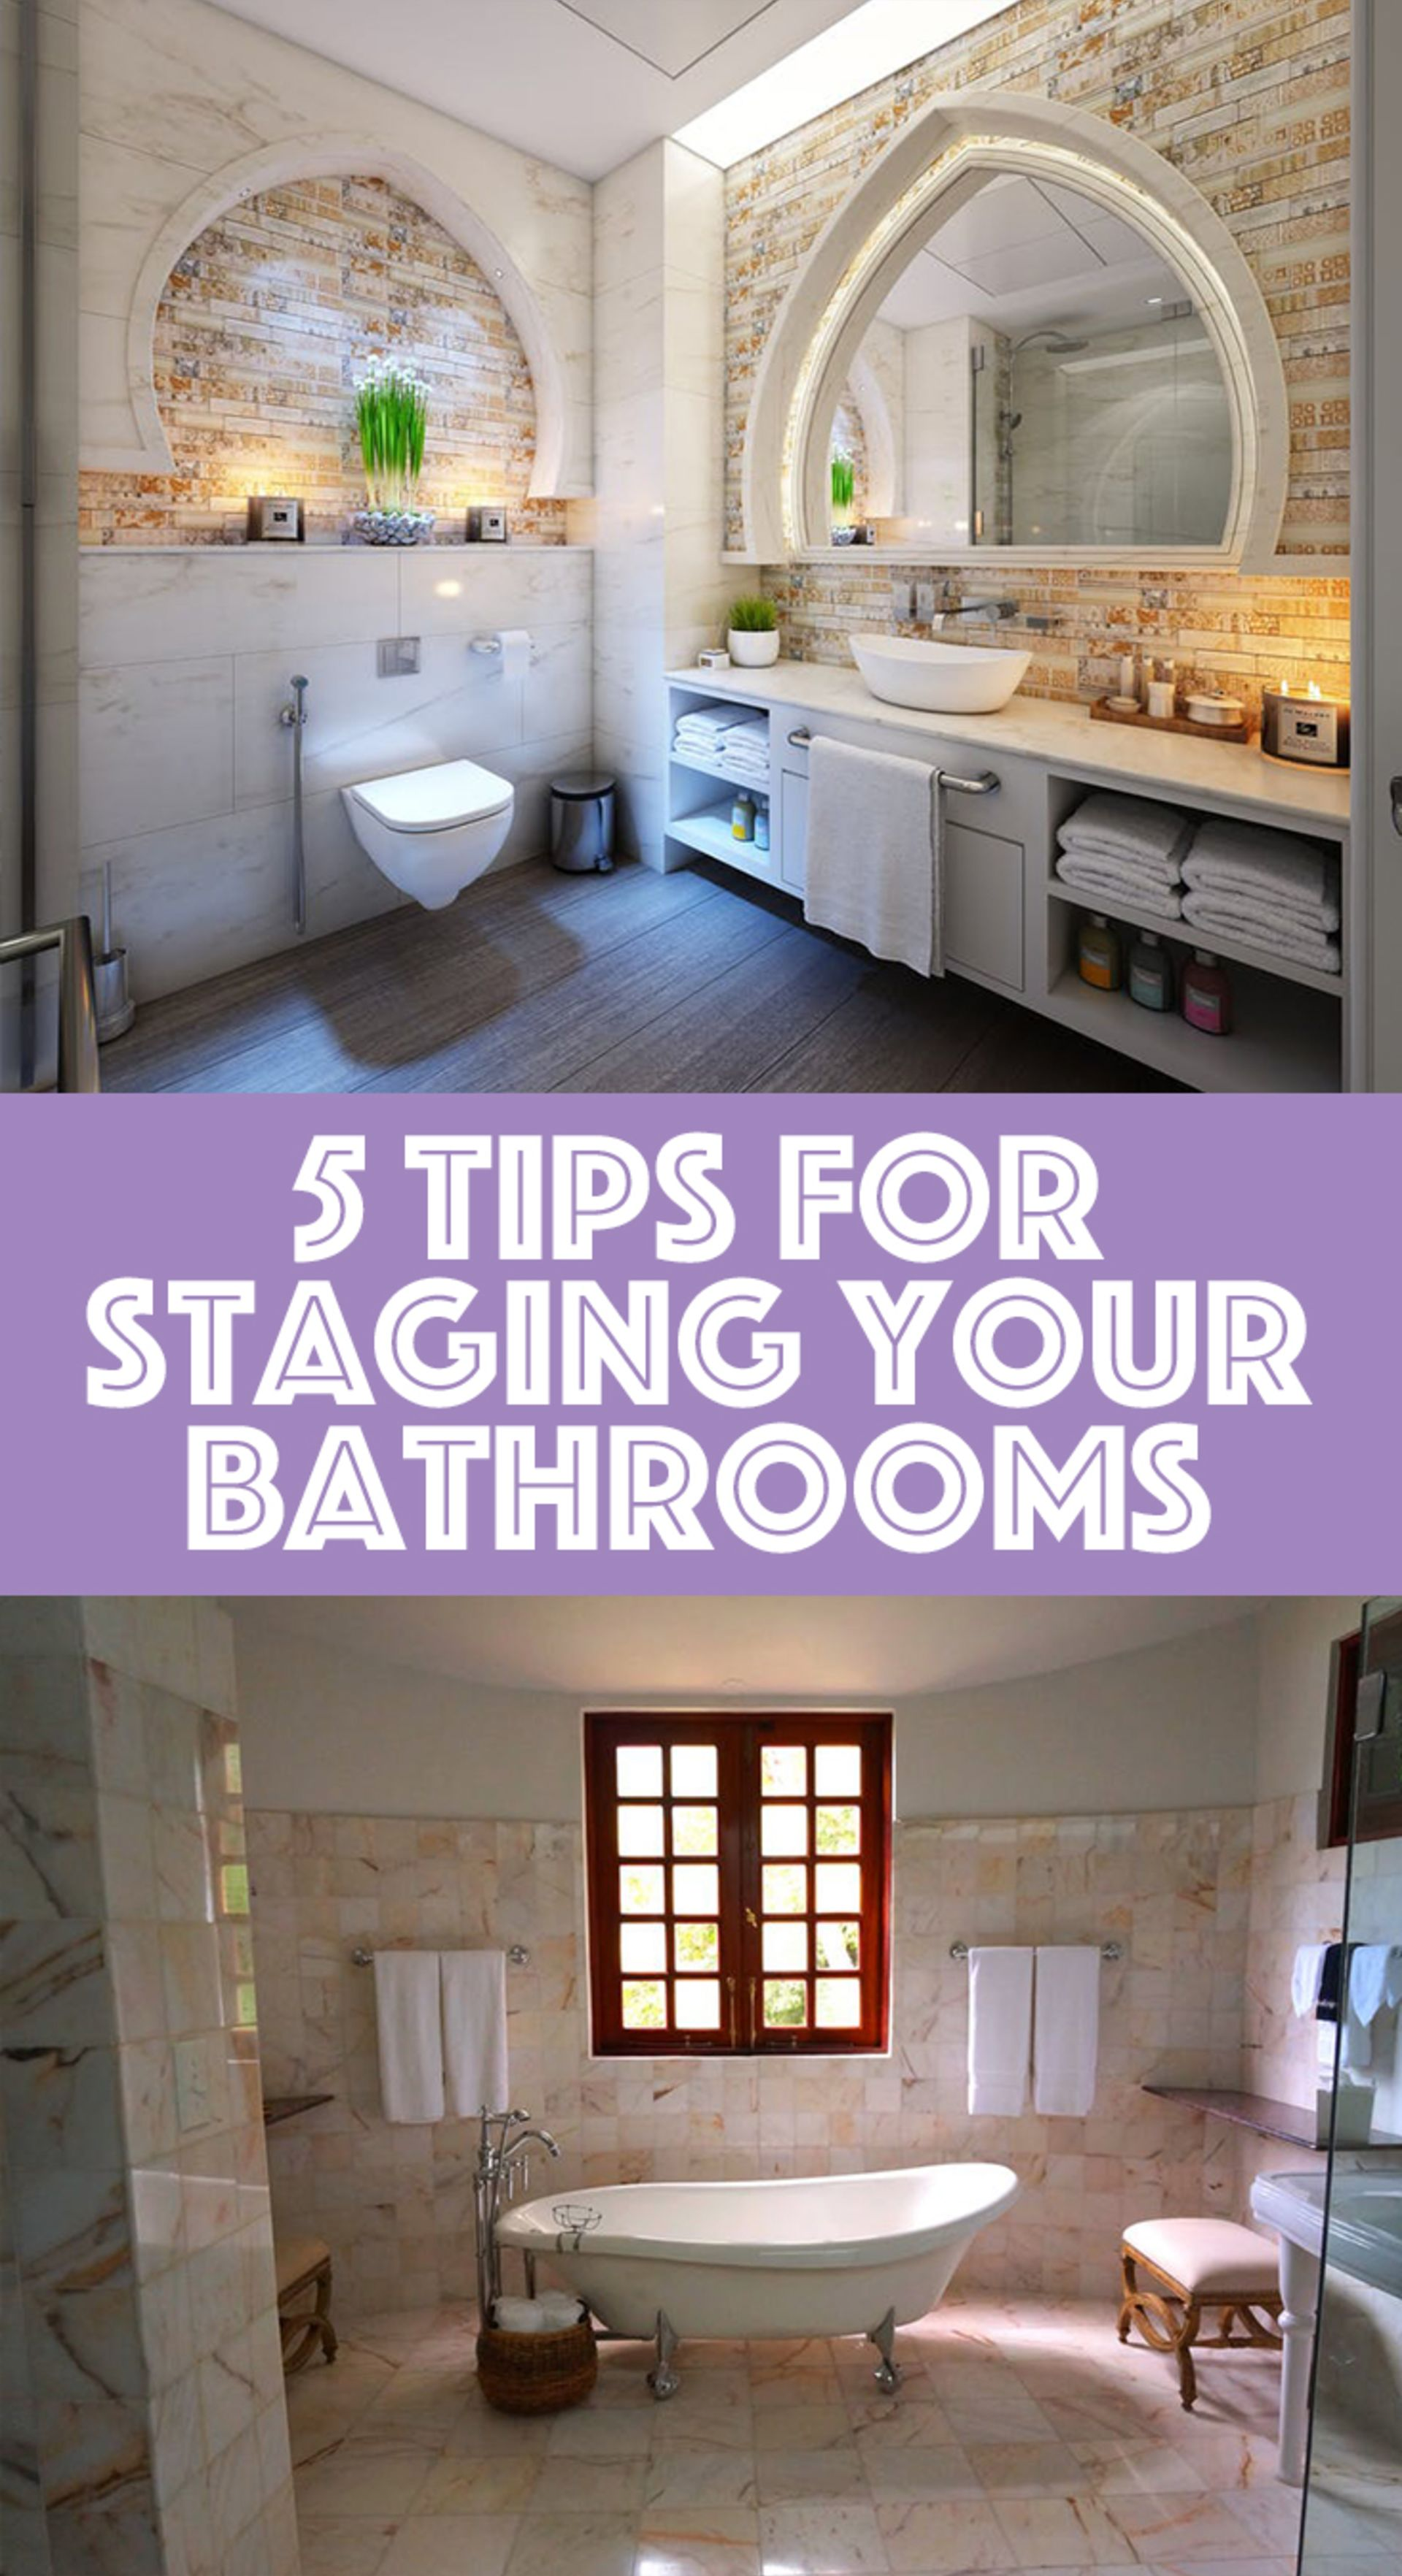 5 Tips for Staging Your Bathrooms